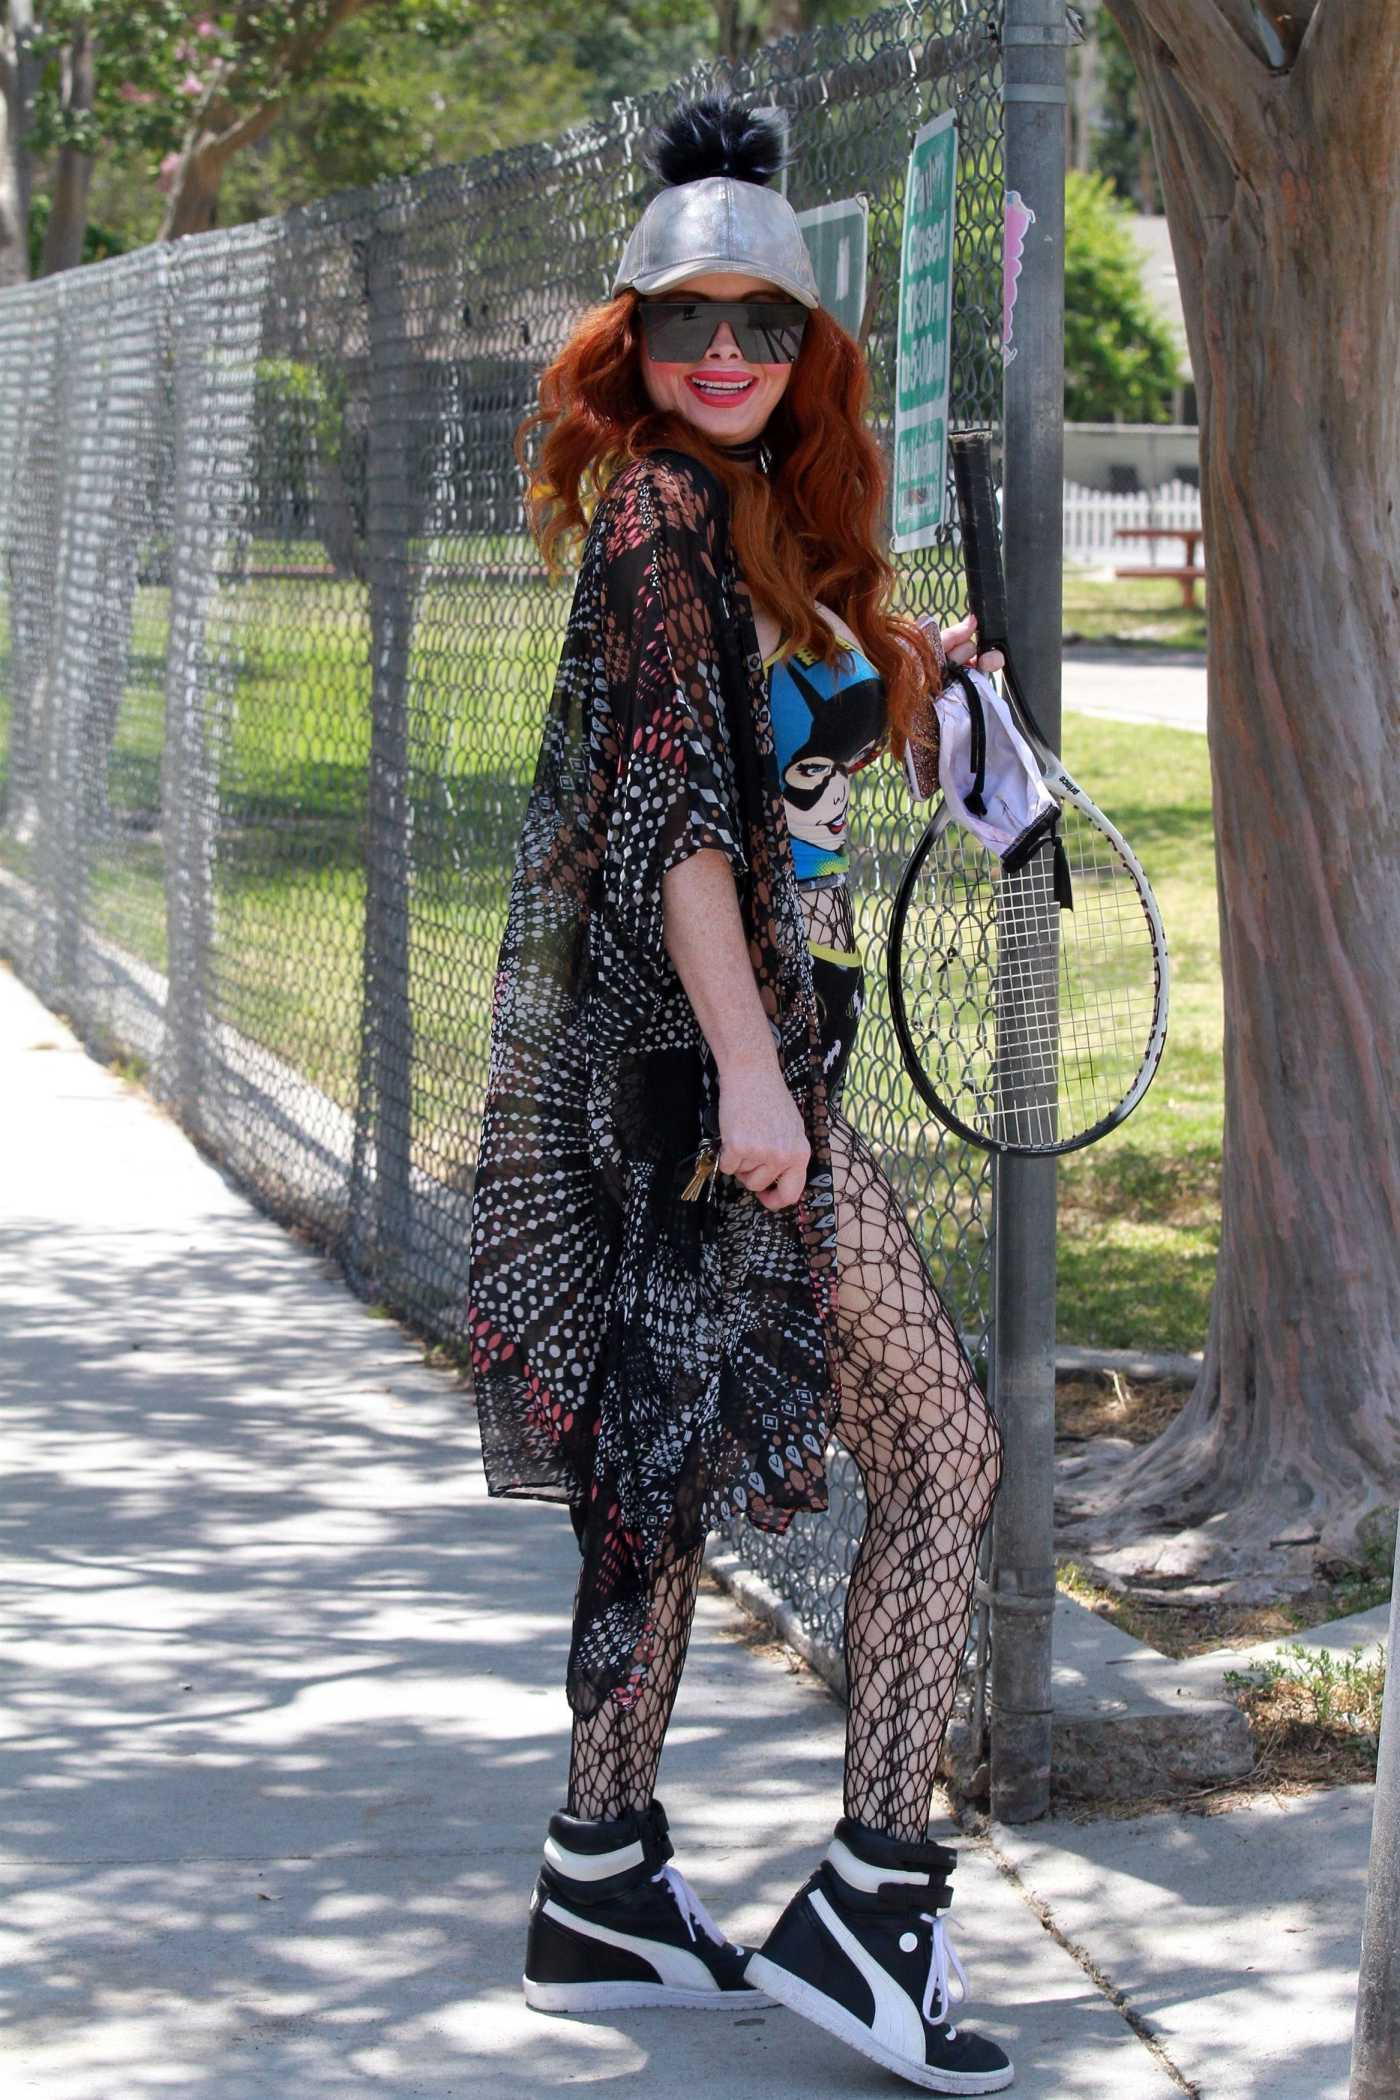 Phoebe Price in a Black Super Girl Outfit Attends the Local Tennis Court in Studio City 06/20/2020